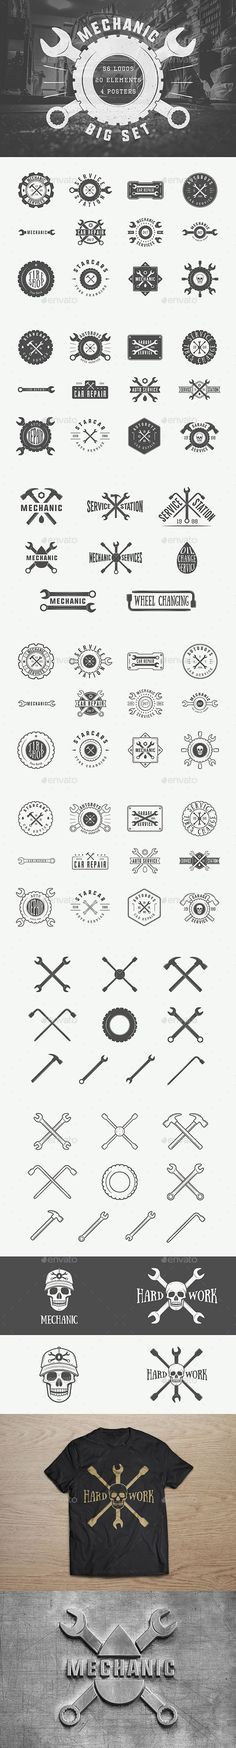 Mechanic Vintage Emblems Template PSD, Vector EPS, AI Illustrator